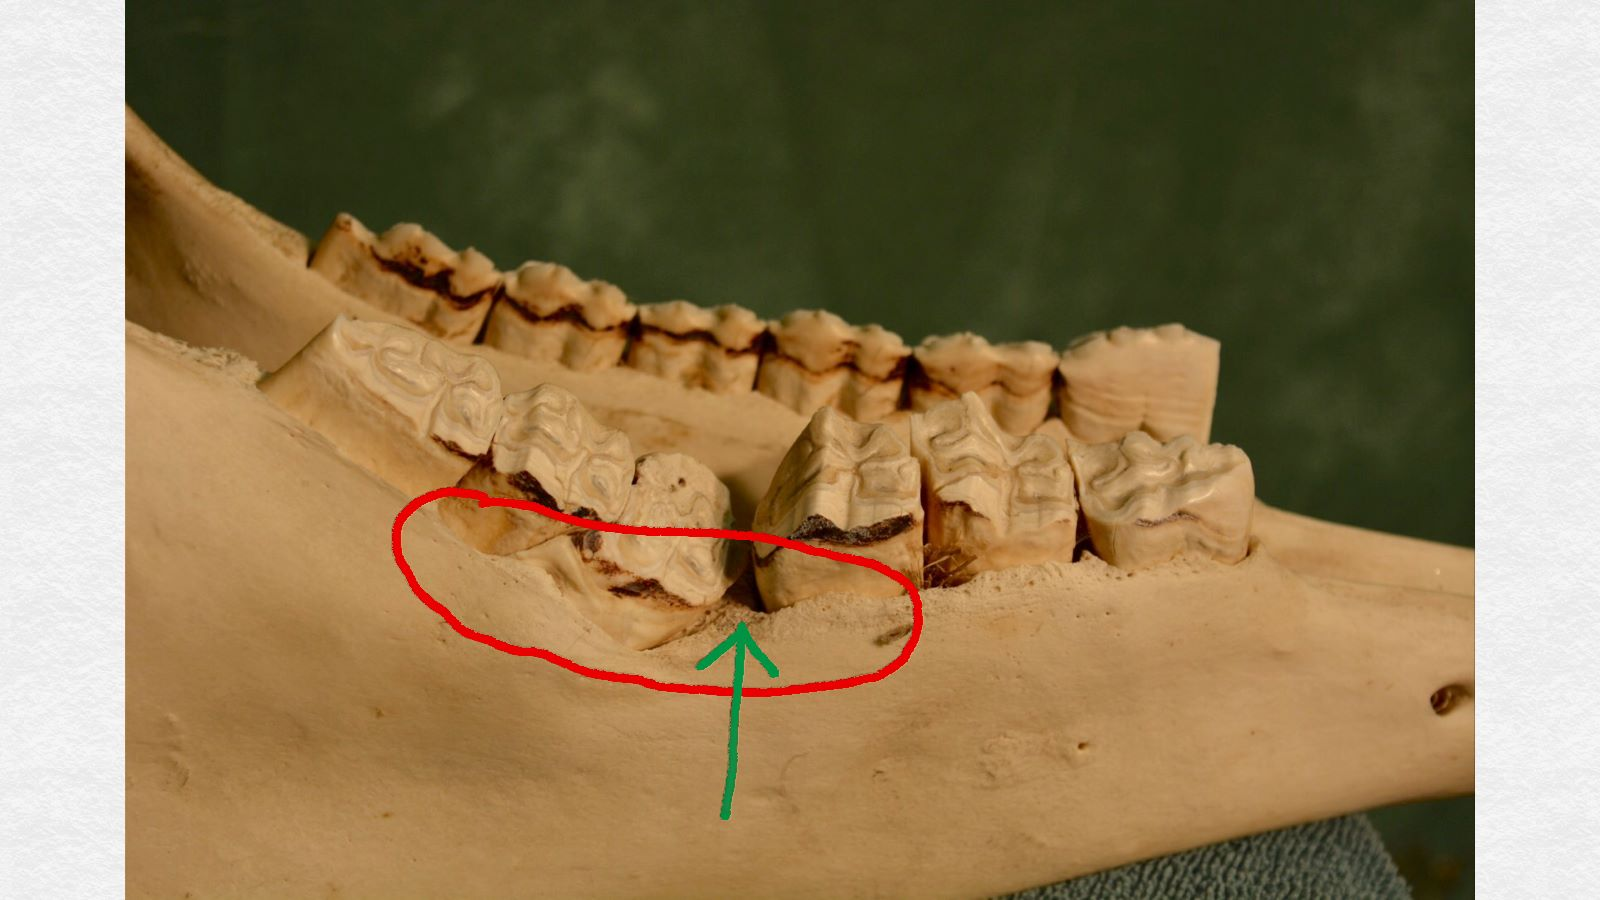 Notice the dip in the contour of the bone and generalized bone loss (red circle) in the region where the overlong upper cheek tooth was wedged between the lower teeth (green arrow). Feed would have also trapped in this area, causing periodontal disease